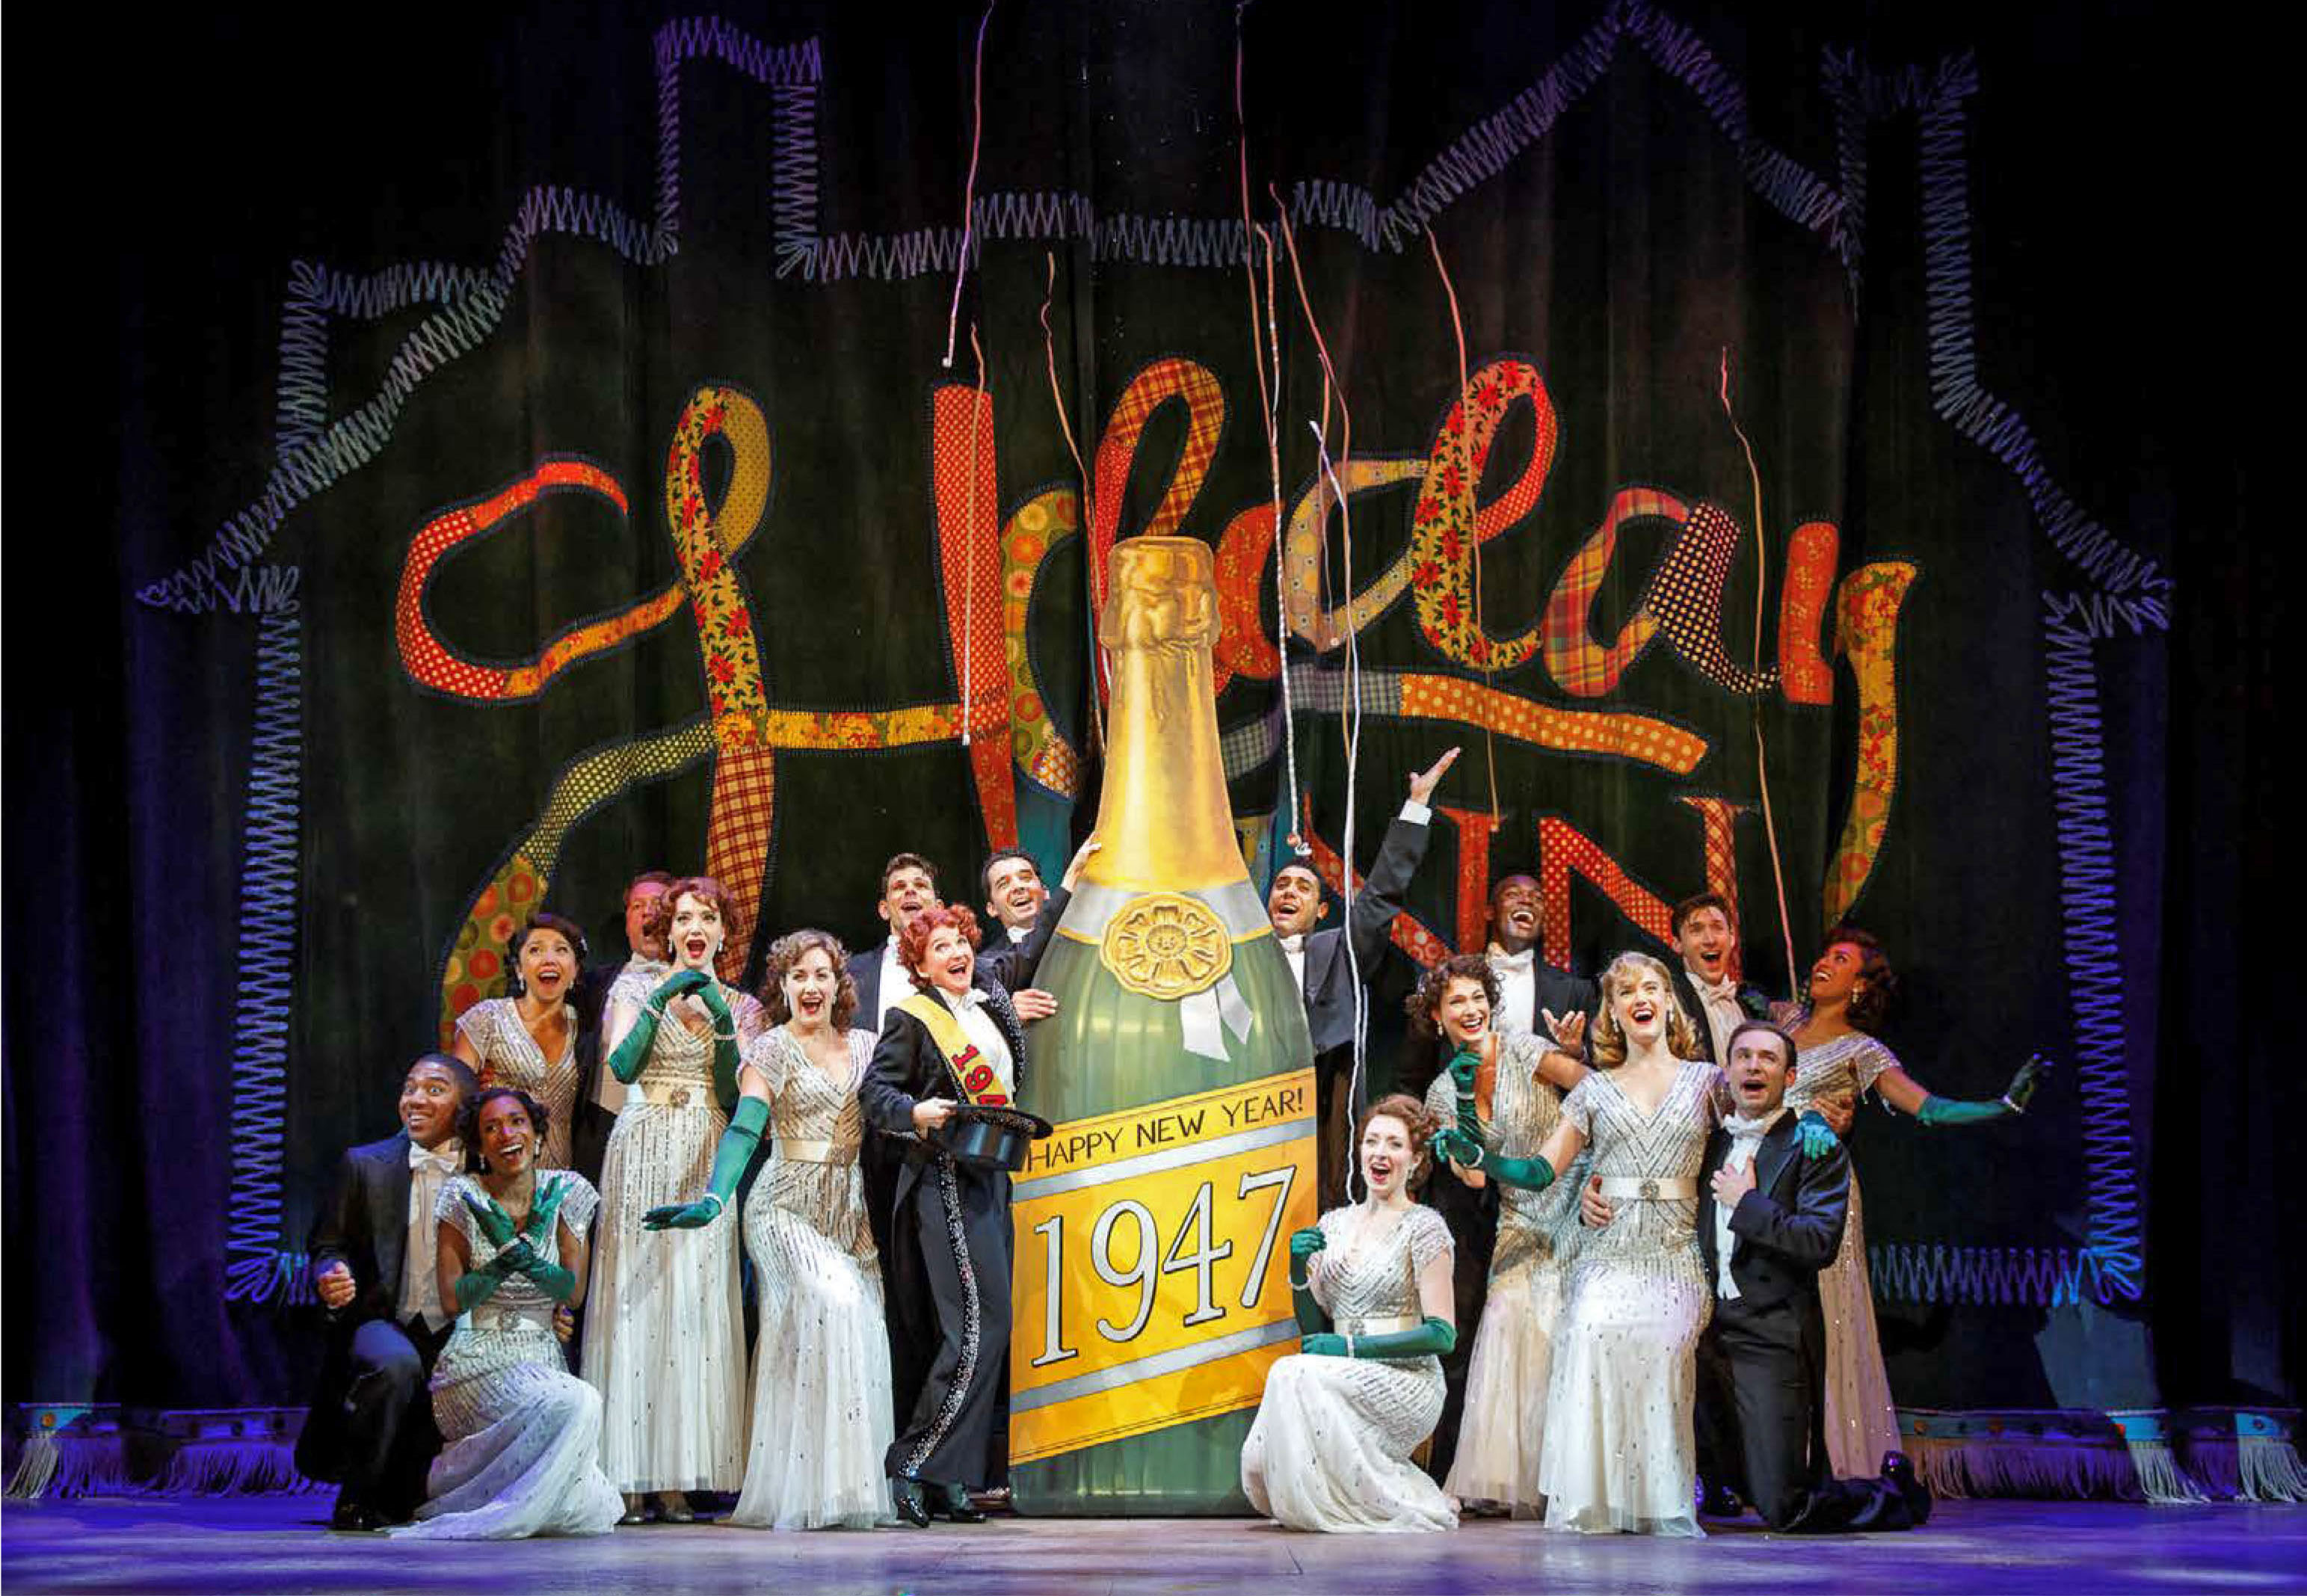 cast on stage with giant champagne bottle that reads 1947